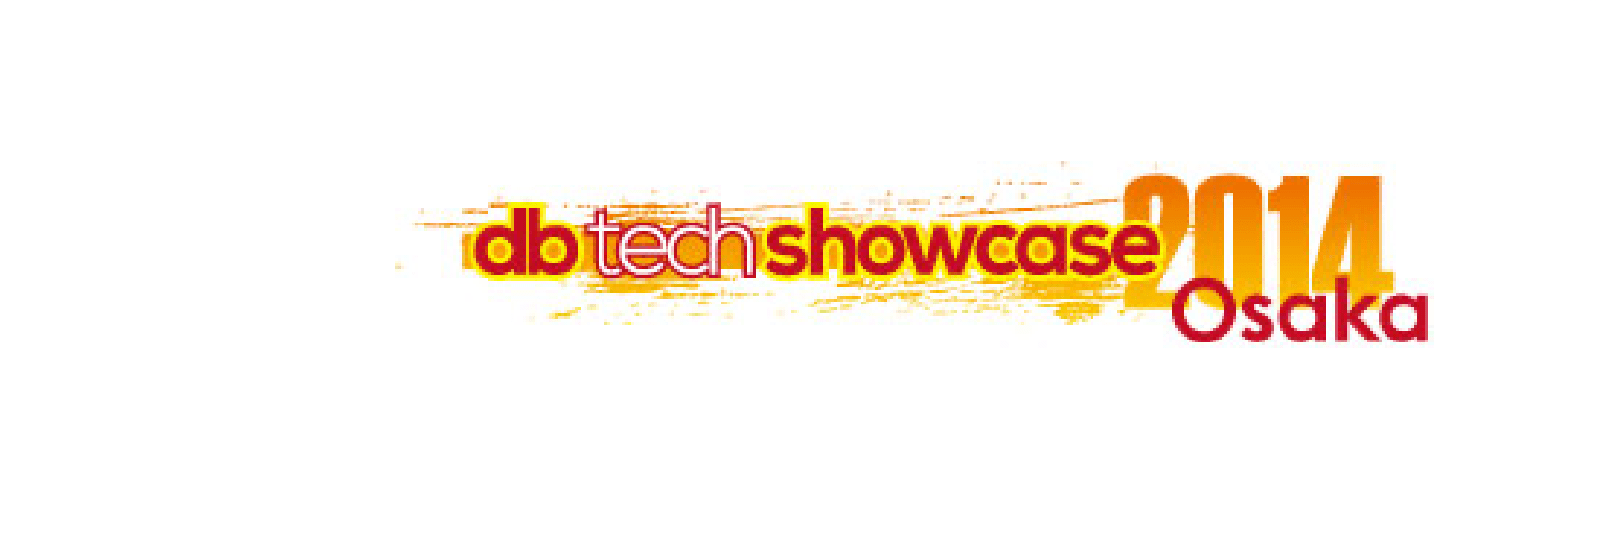 db tech showcase Osaka 2014